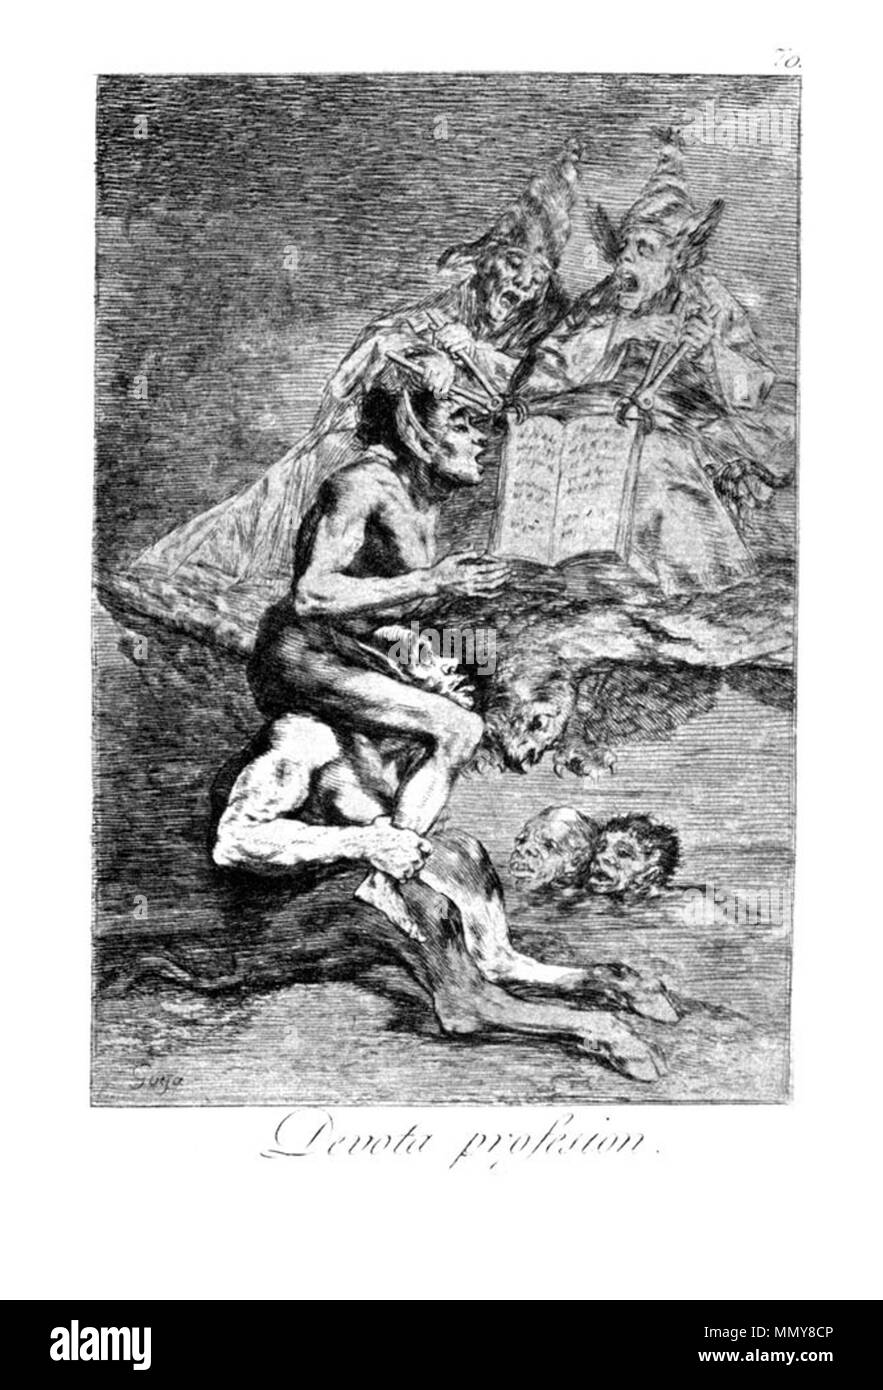 . Los Caprichos is a set of 80 aquatint prints created by Francisco Goya for release in 1799.  . 1799.   Francisco Goya (1746–1828)   Alternative names Francisco Goya Lucientes, Francisco de Goya y Lucientes, Francisco José Goya Lucientes  Description Spanish painter, printmaker, lithographer, engraver and etcher  Date of birth/death 30 March 1746 16 April 1828  Location of birth/death Fuendetodos Bordeaux  Work location Madrid, Zaragoza, Bordeaux  Authority control  : Q5432 VIAF:?54343141 ISNI:?0000 0001 2280 1608 ULAN:?500118936 LCCN:?n79003363 NLA:?36545788 WorldCat Goya - Caprichos (70 - Stock Image